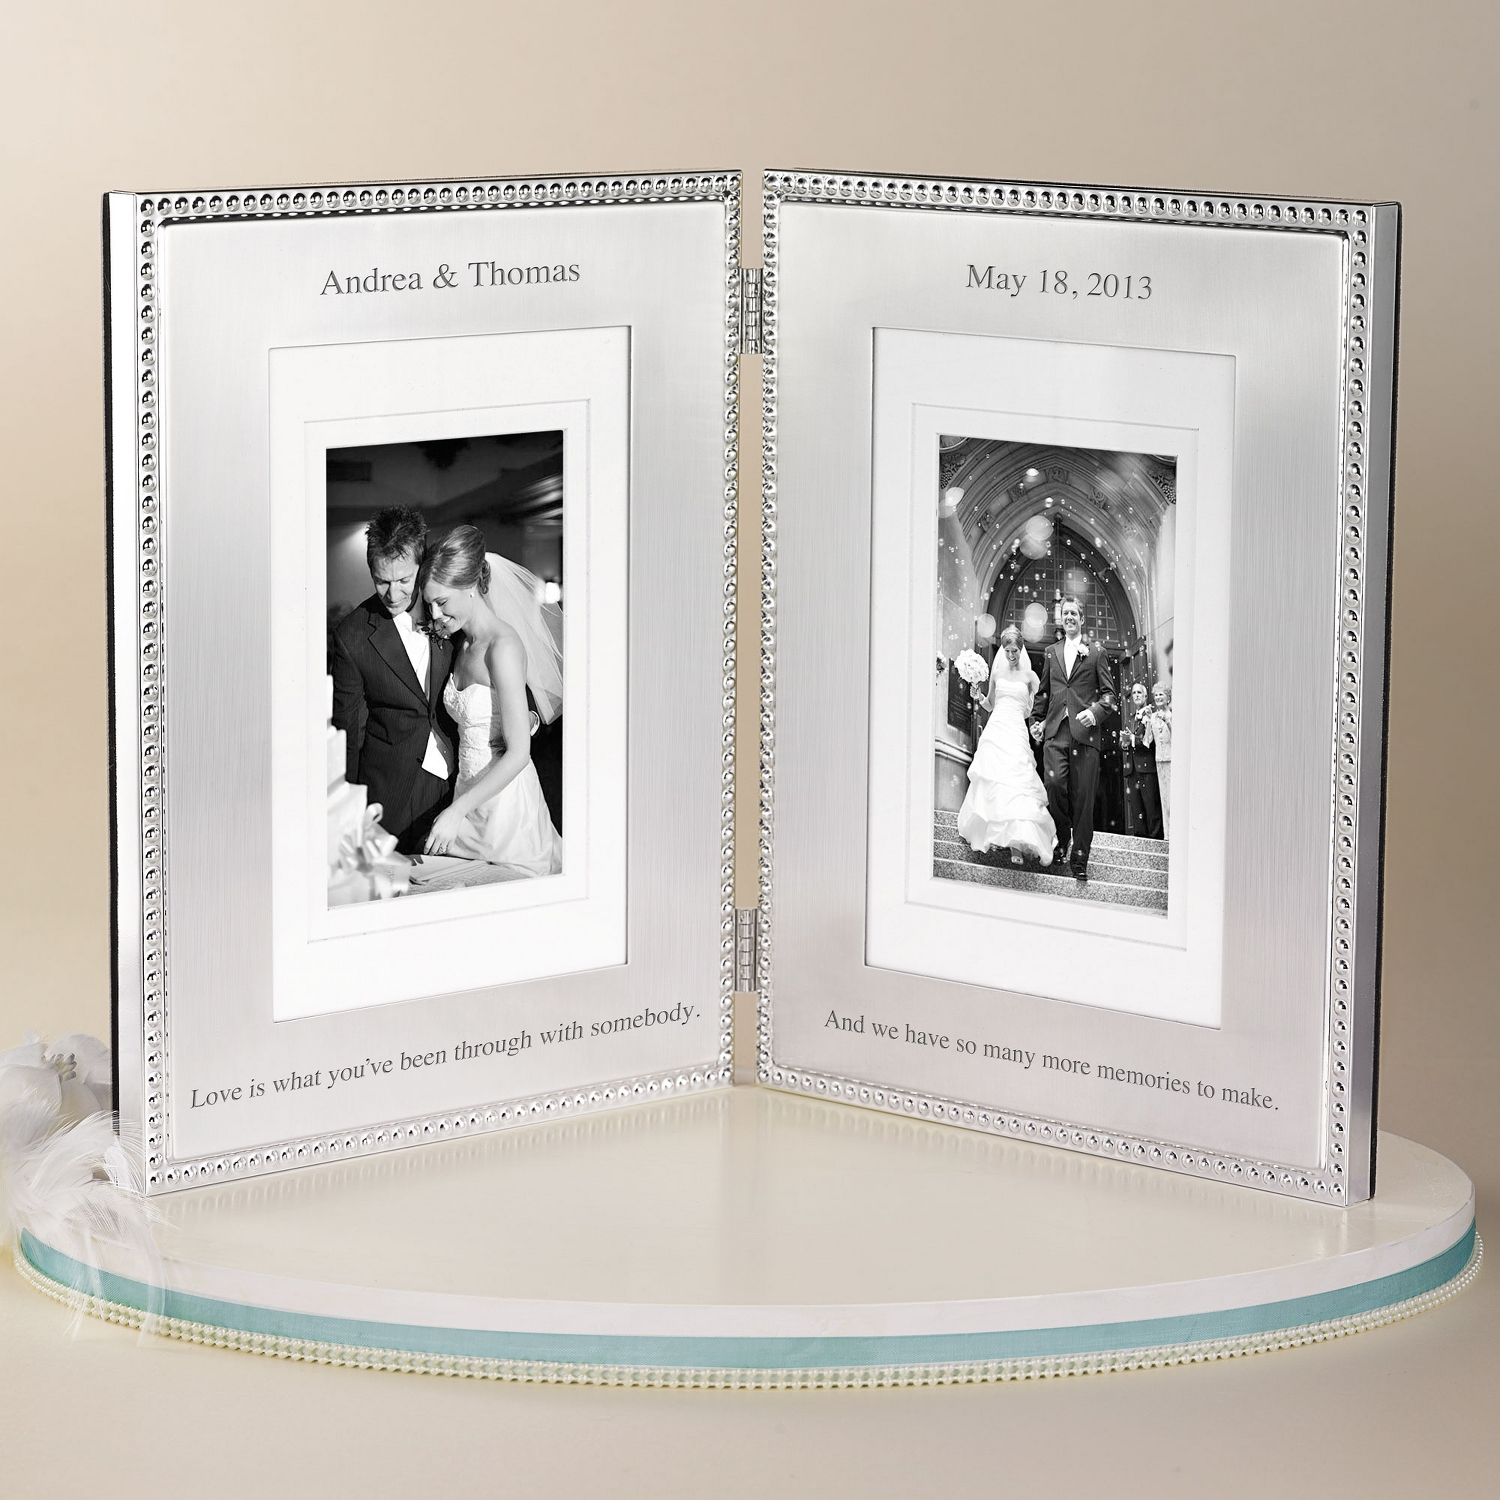 Find things remembered from a vast selection of Picture Frames. Get great deals on eBay!